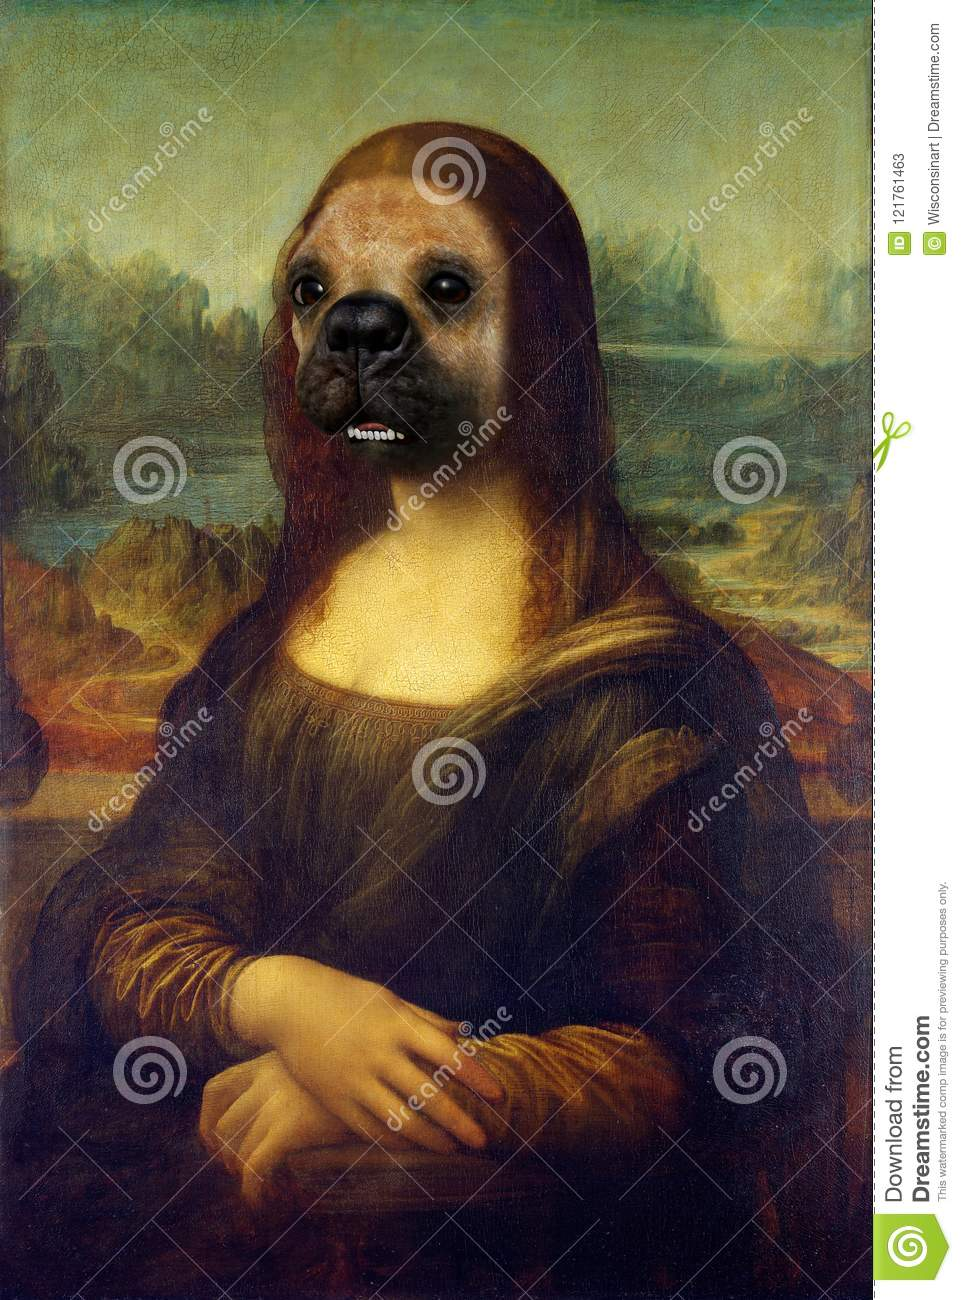 Funny Mona Lisa Dog Face Painting Spoof